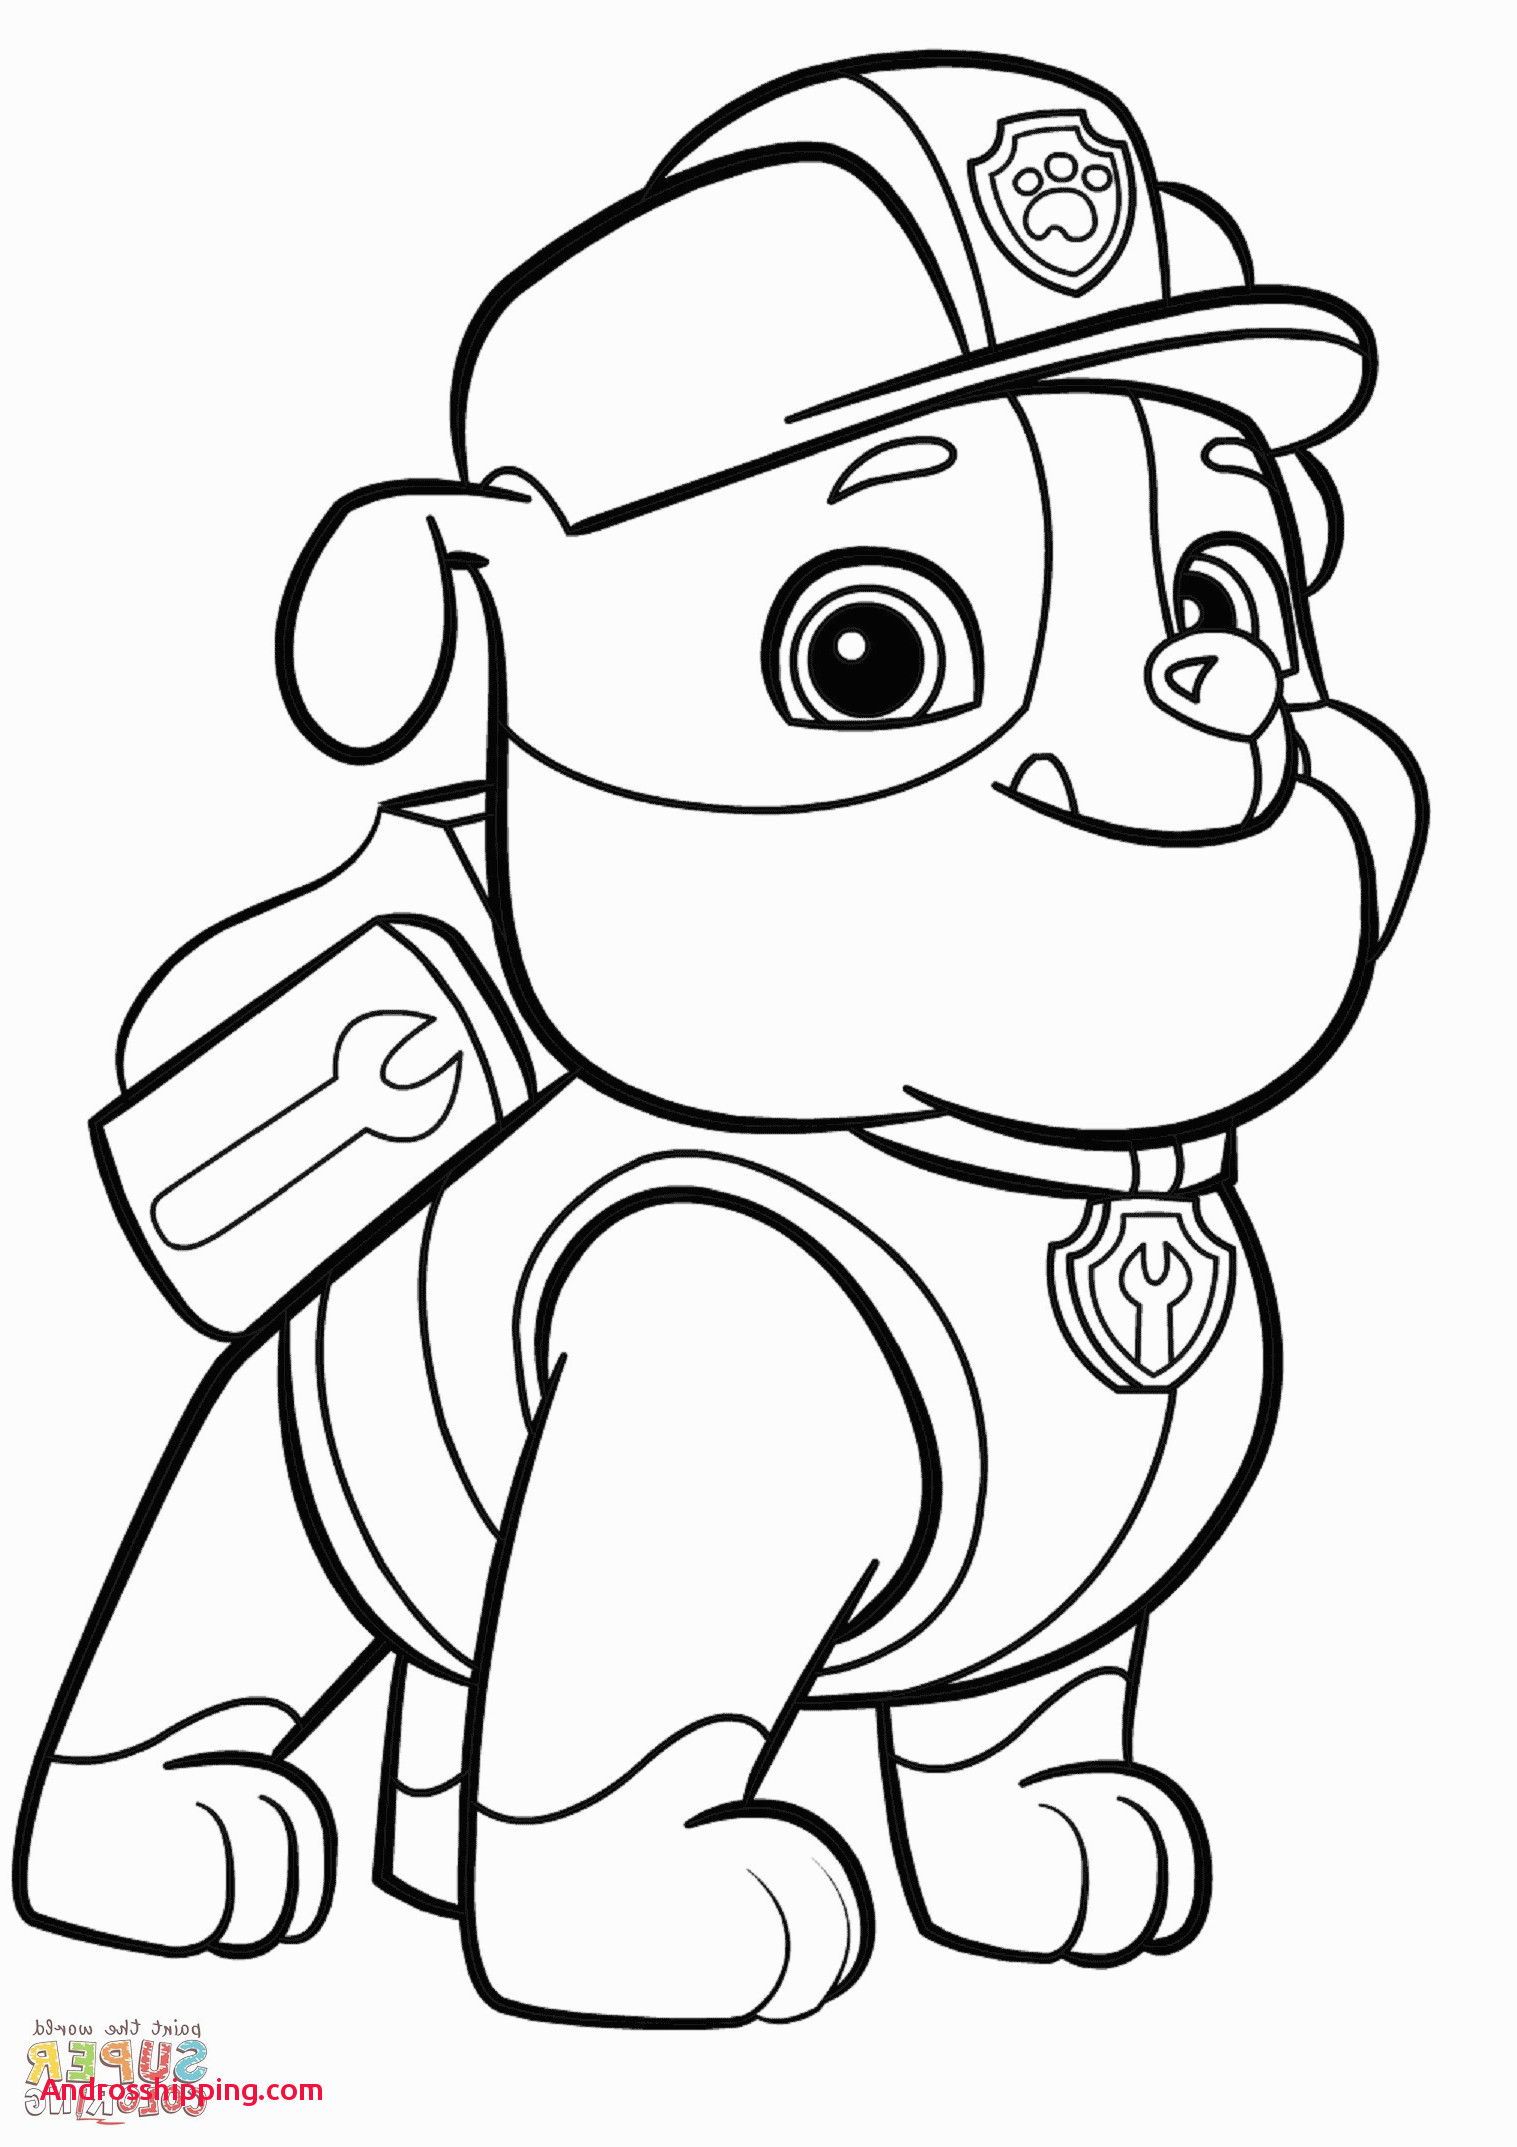 24 Mini Cooper Coloring Pages Collection Coloring Sheets